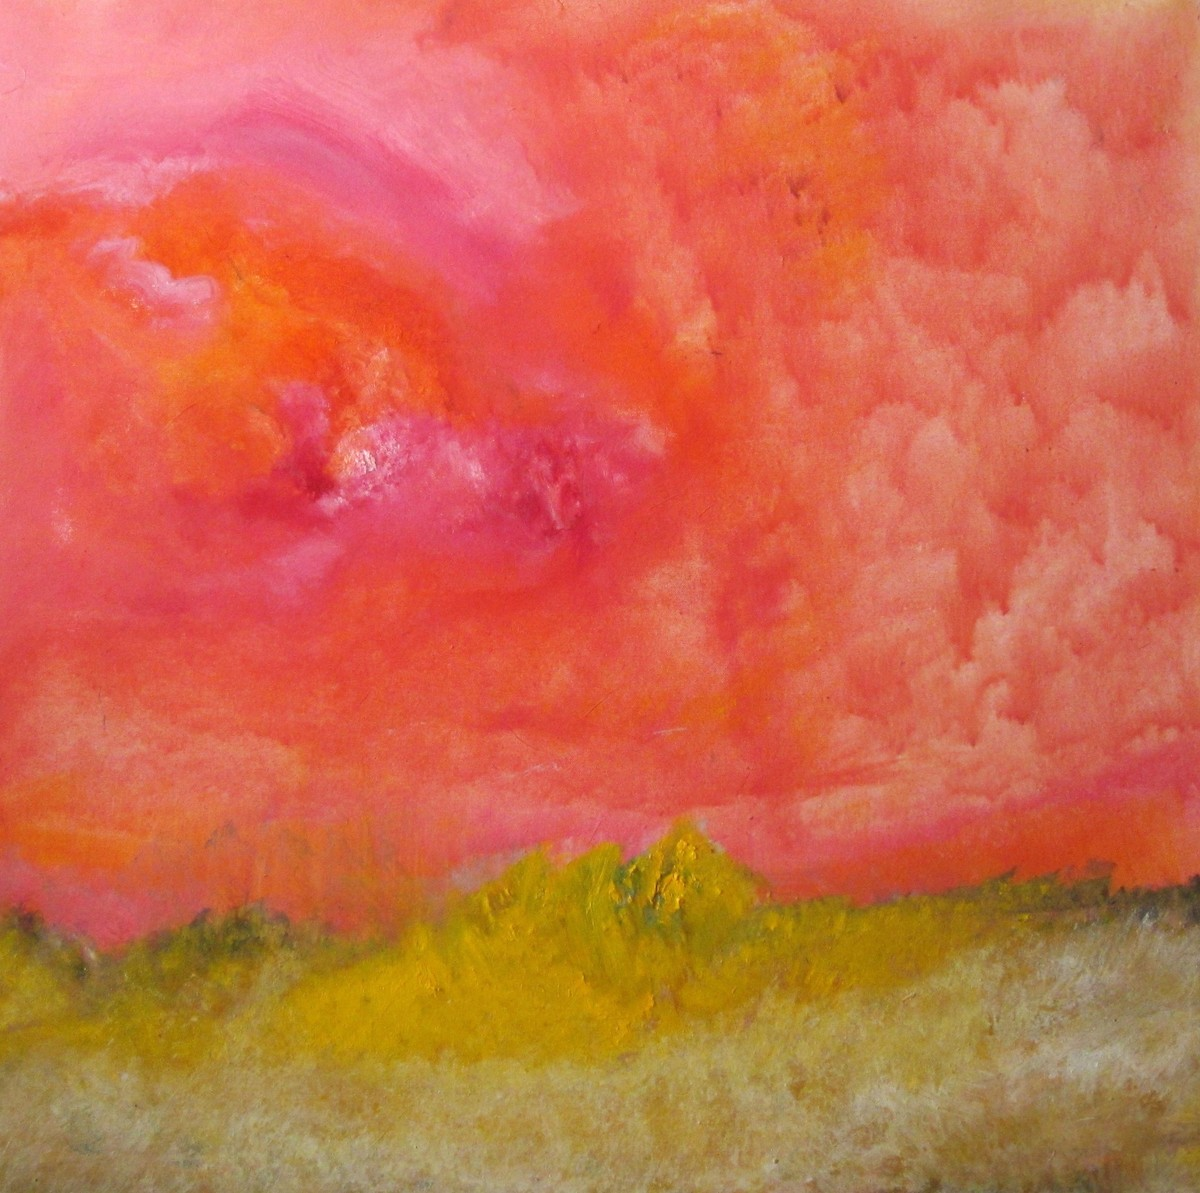 Bloom by Michael J. Ryan, Abstract Painting, Oil on Canvas, Red color